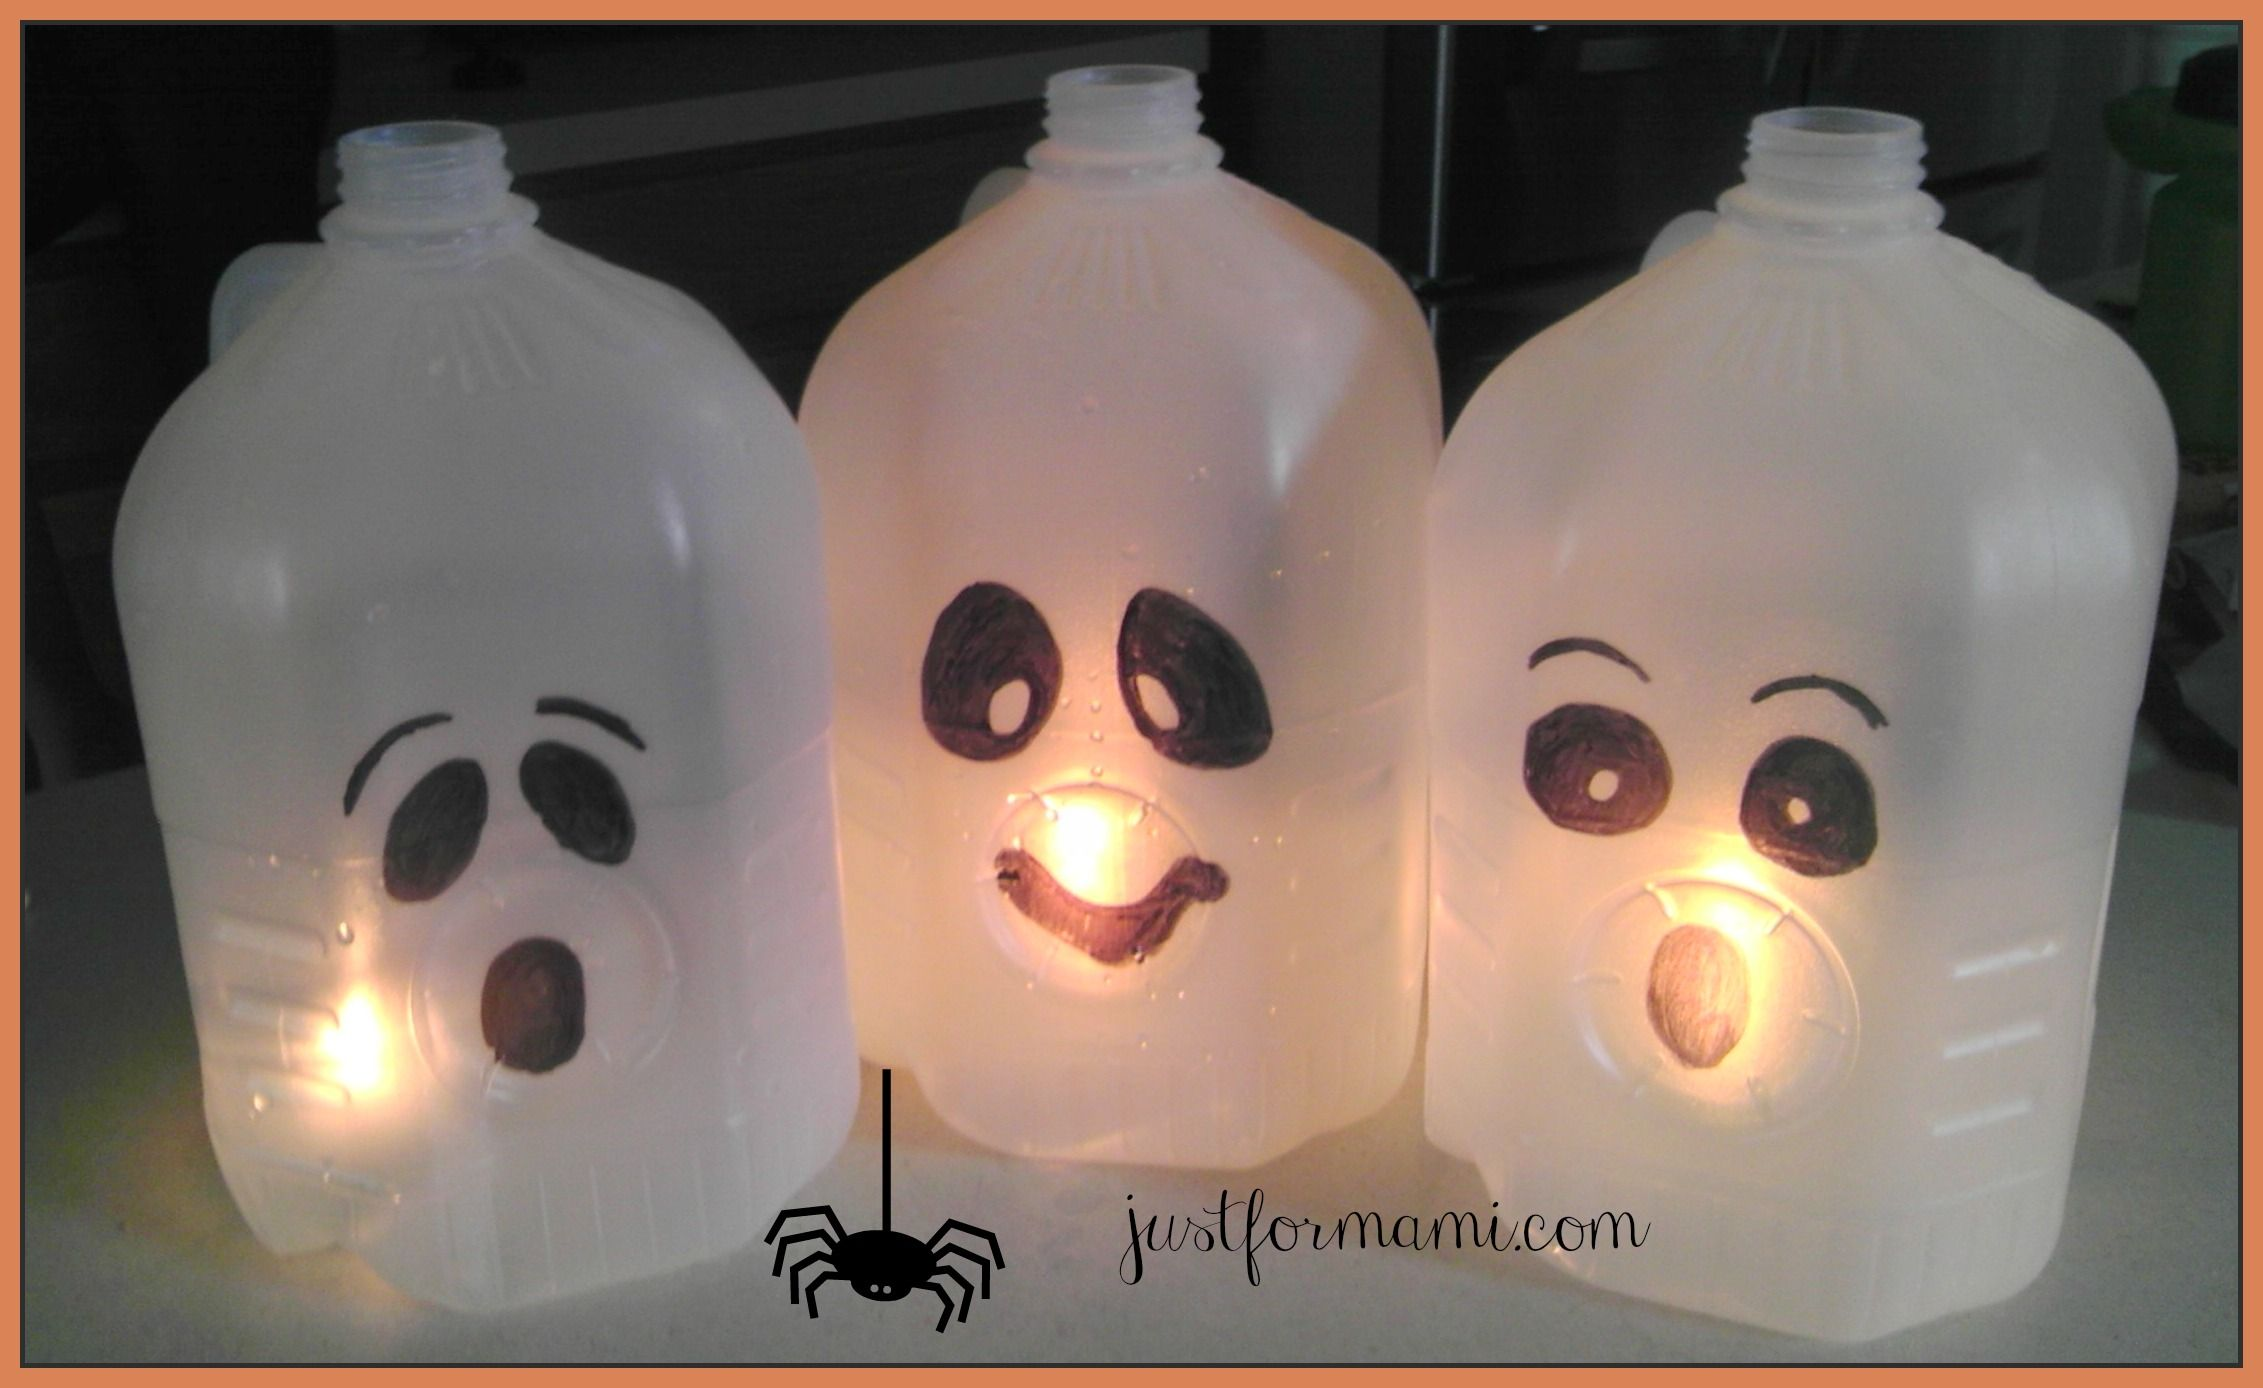 Decoraciones De Halloween Faciles Fantasmas De Bote De Leche Para Decorar En Halloween